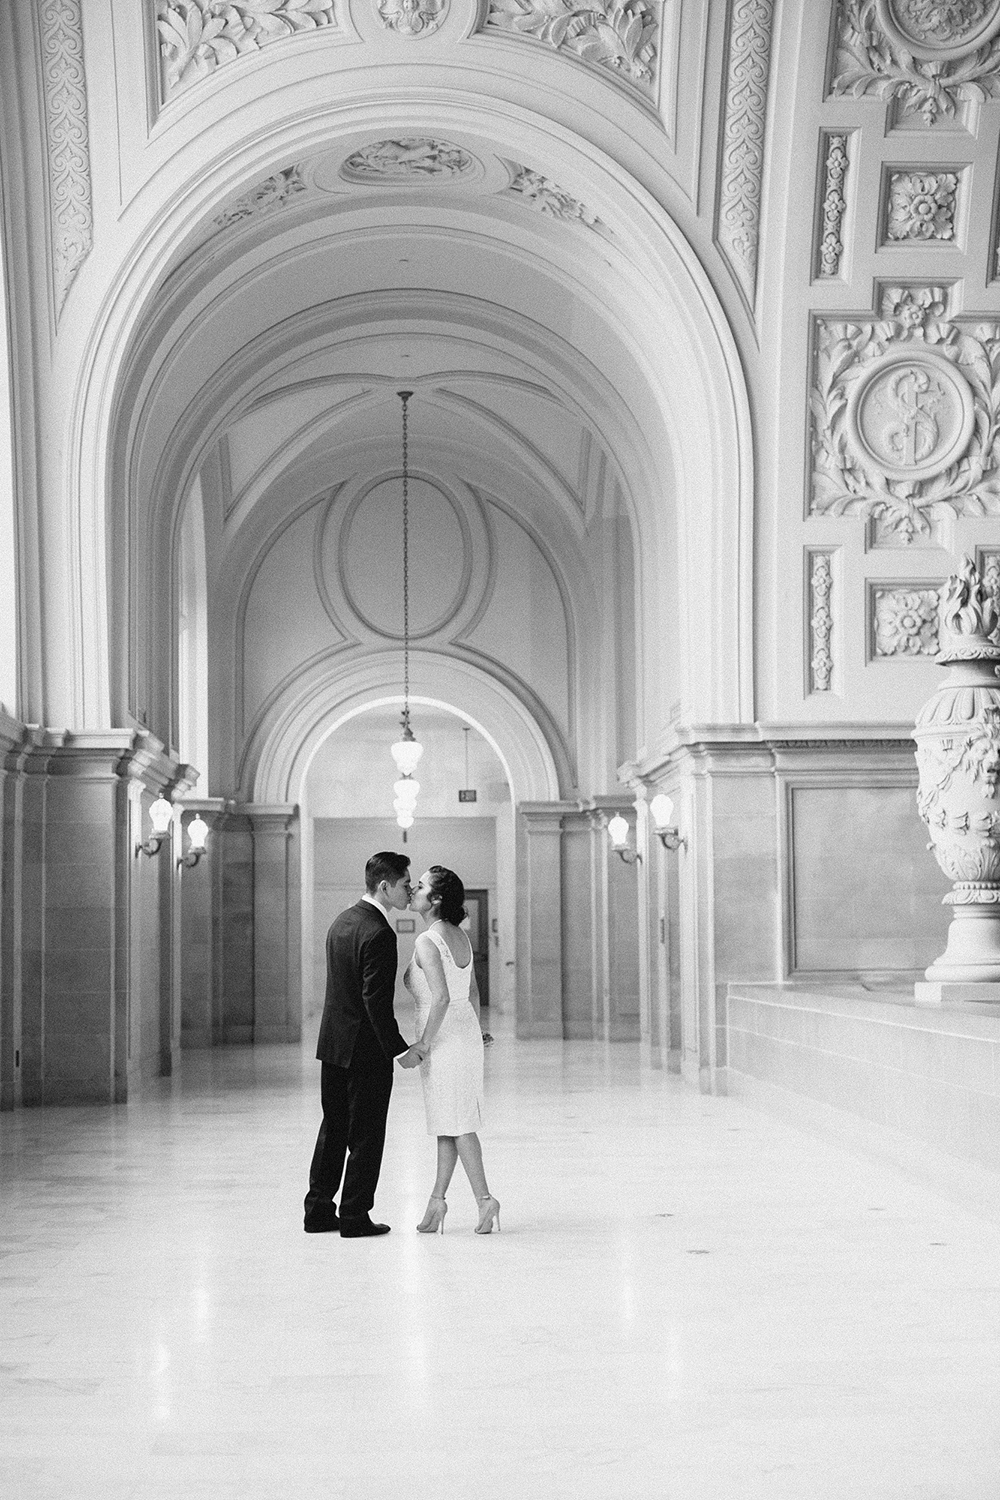 wedding-at-san-francisco-city-hall-11.html